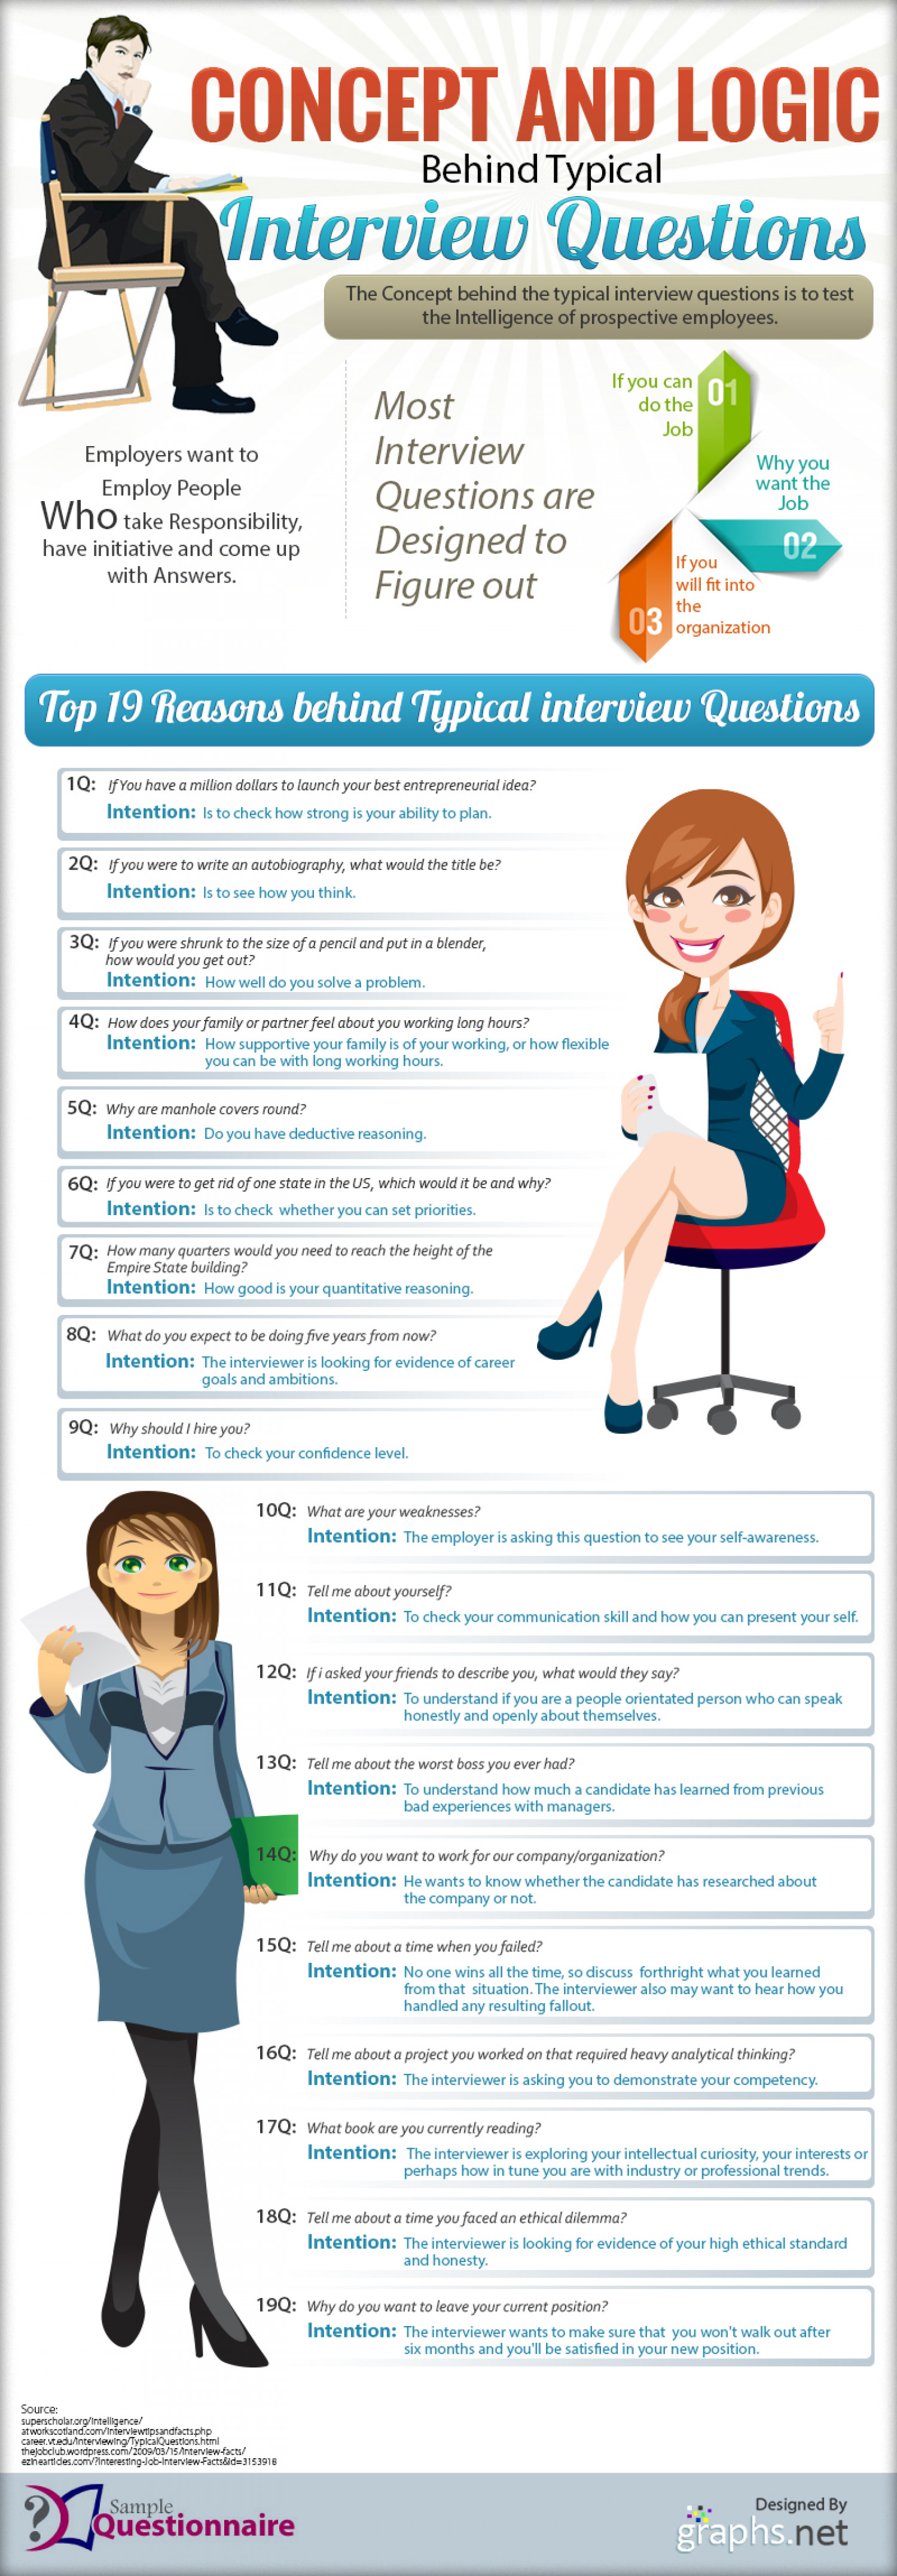 Concept And Logic Behind Typical Interview Questions Infographic